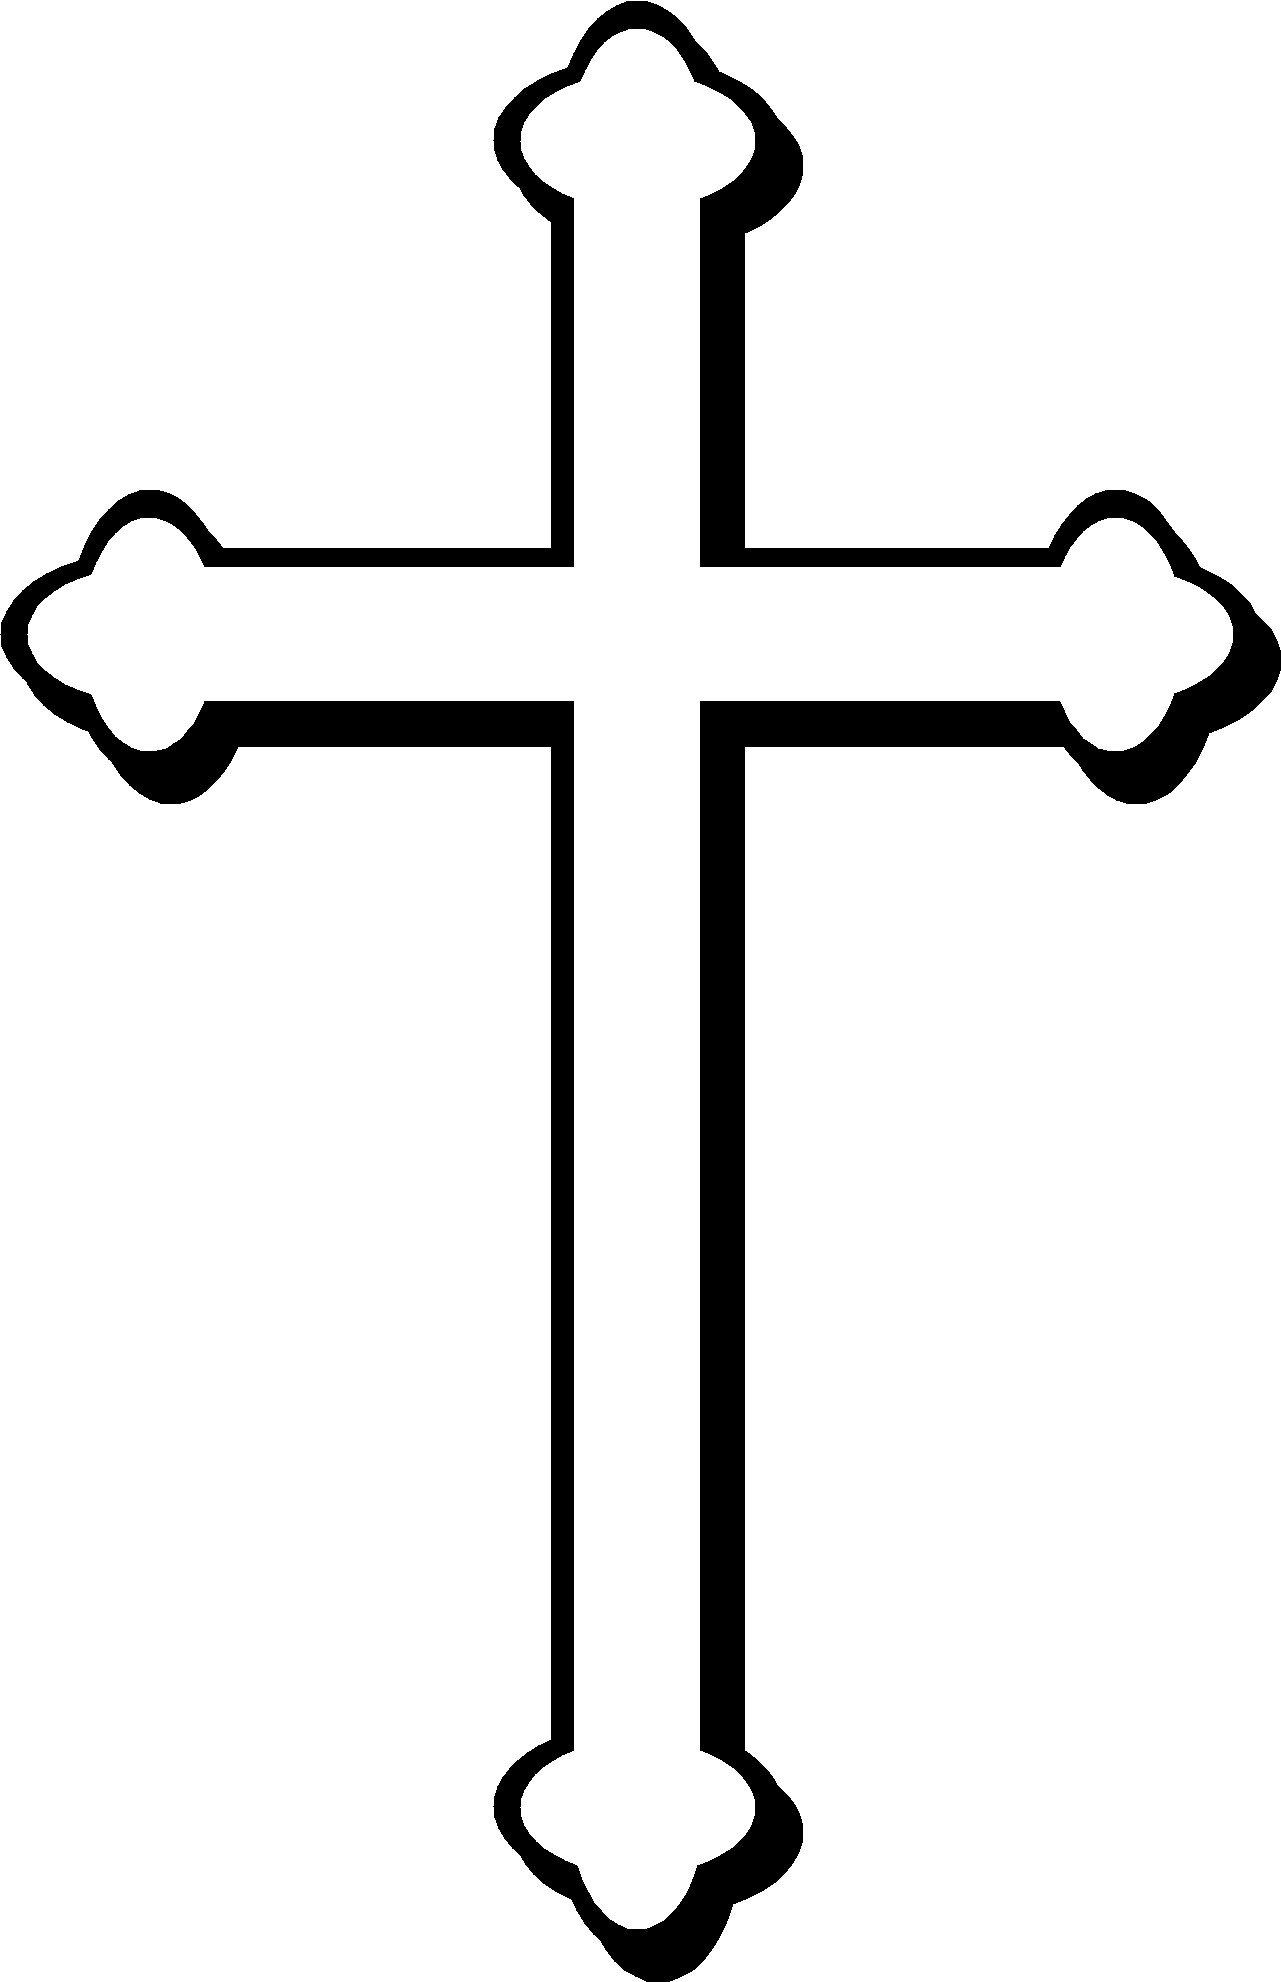 21 Christian Cross Drawings Free Cliparts That You Can Download To You